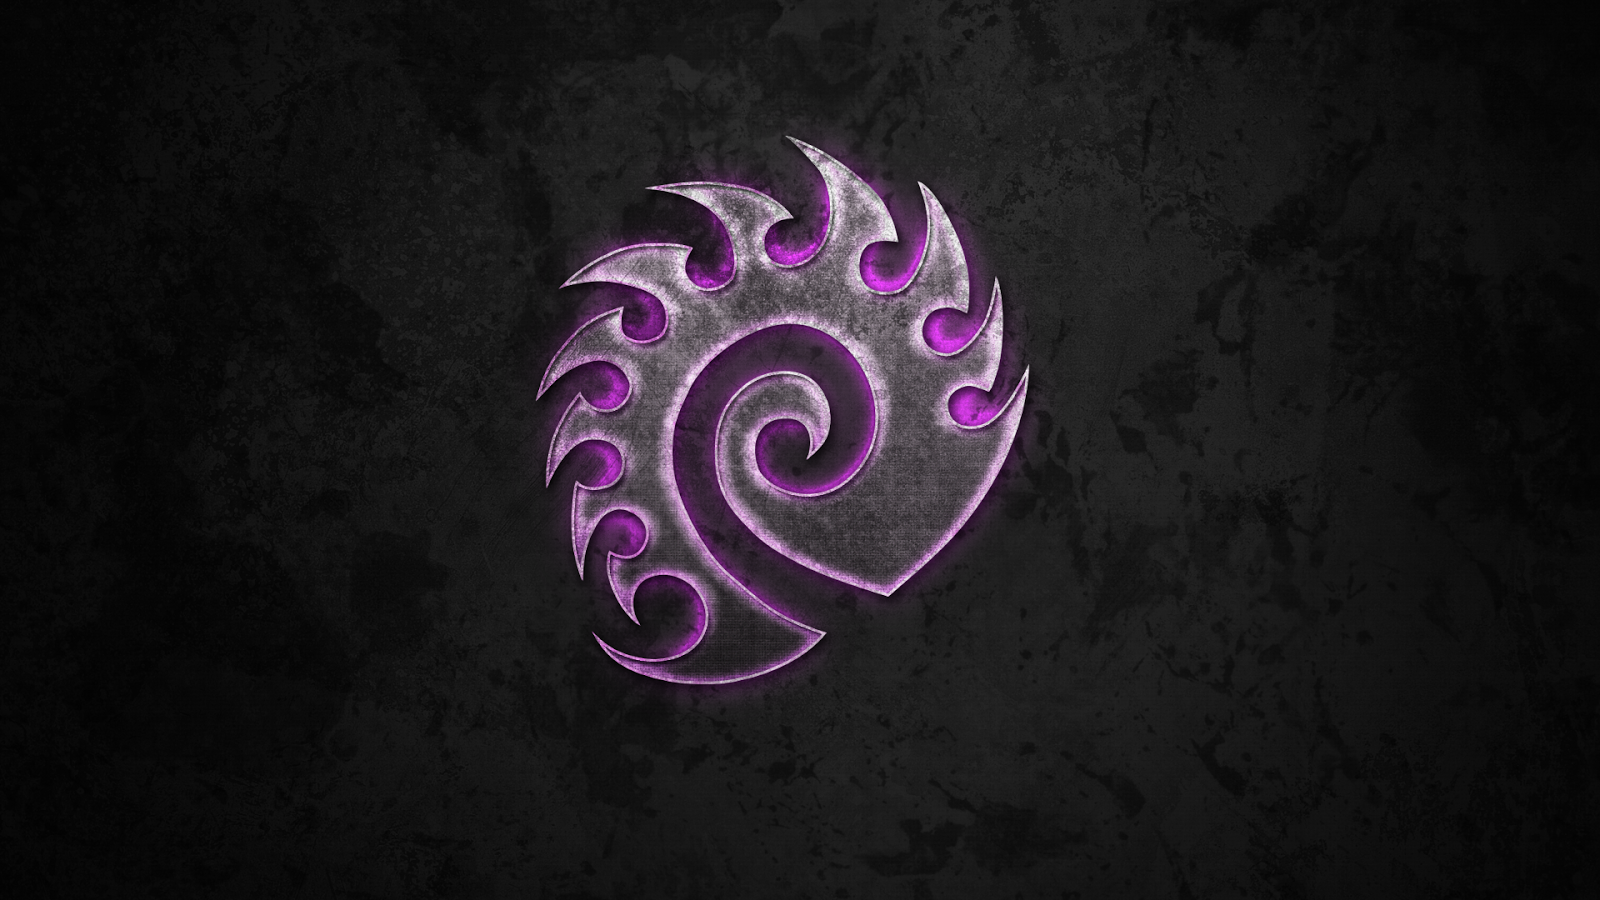 Download image tl zerg logos wallpaper pc android iphone and ipad